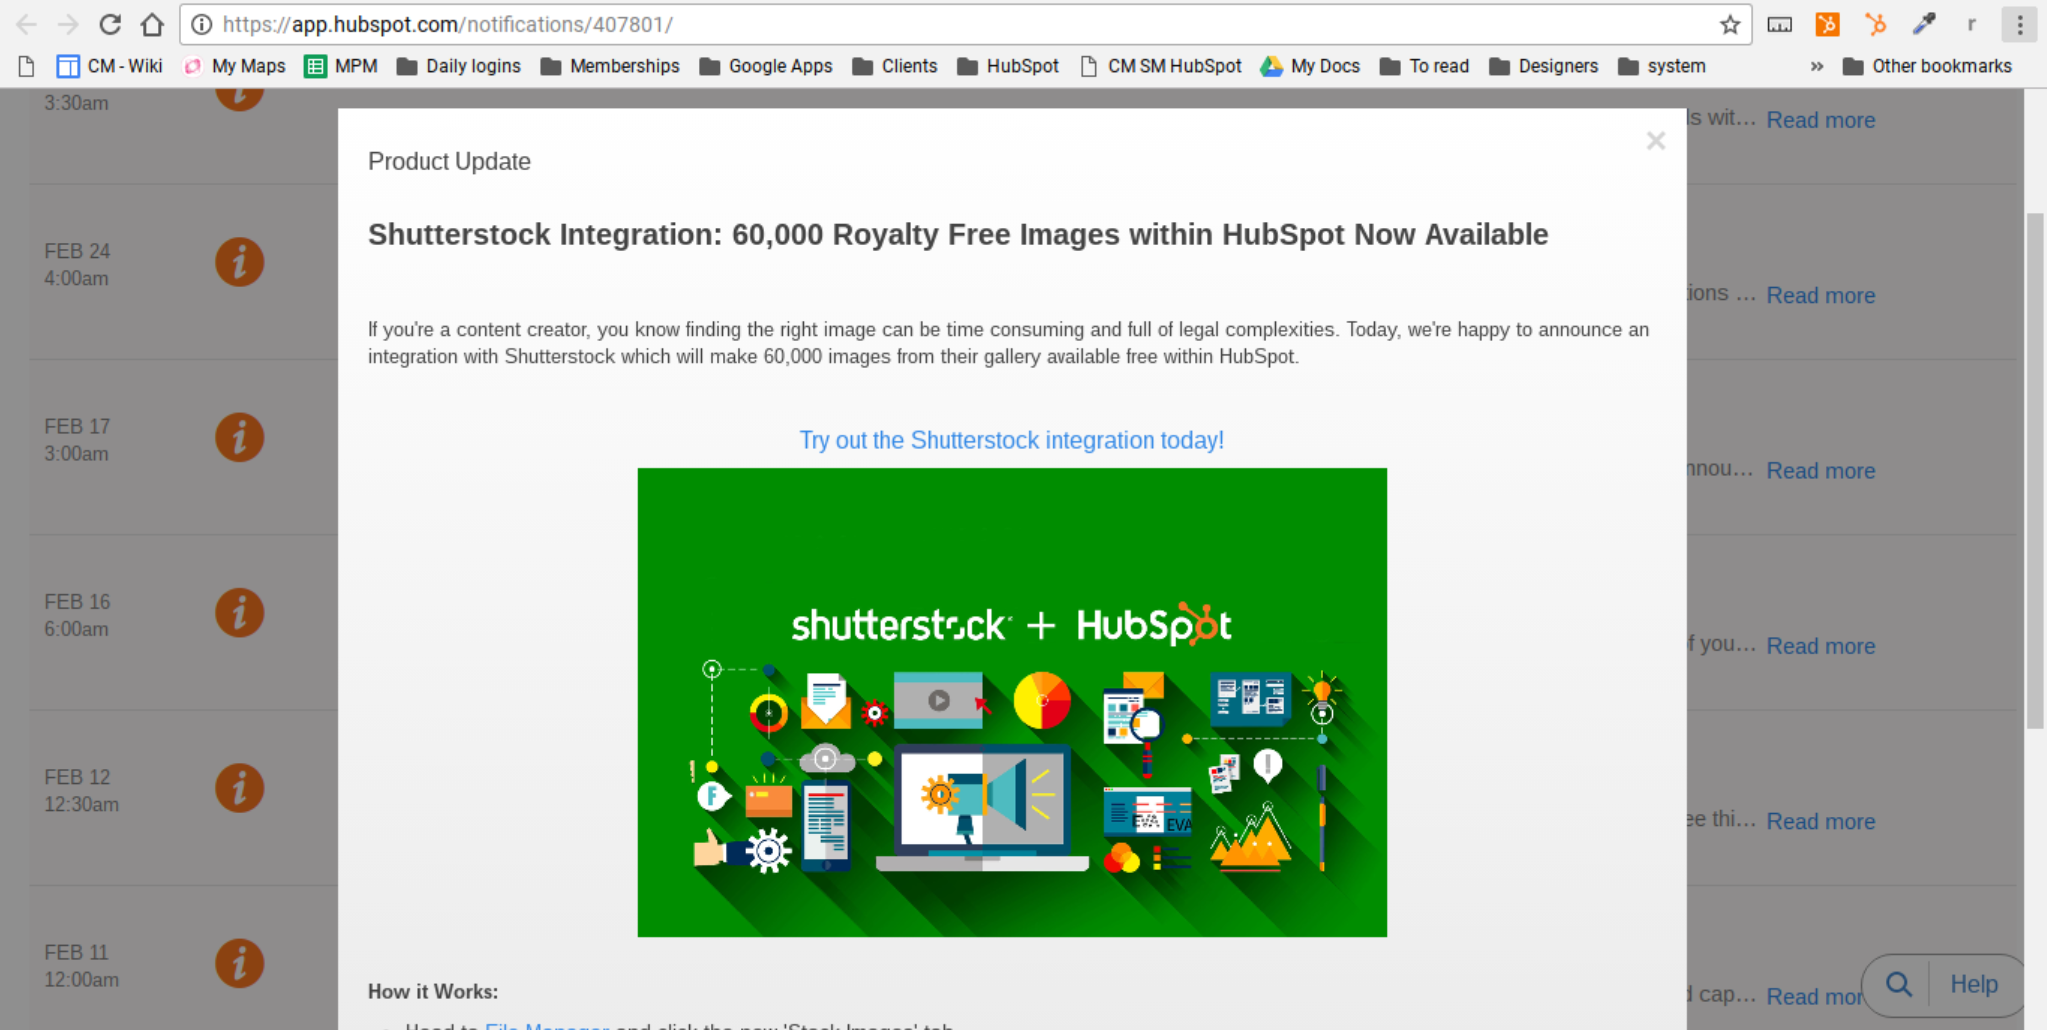 hubspot-new-feature-shutterstock.png